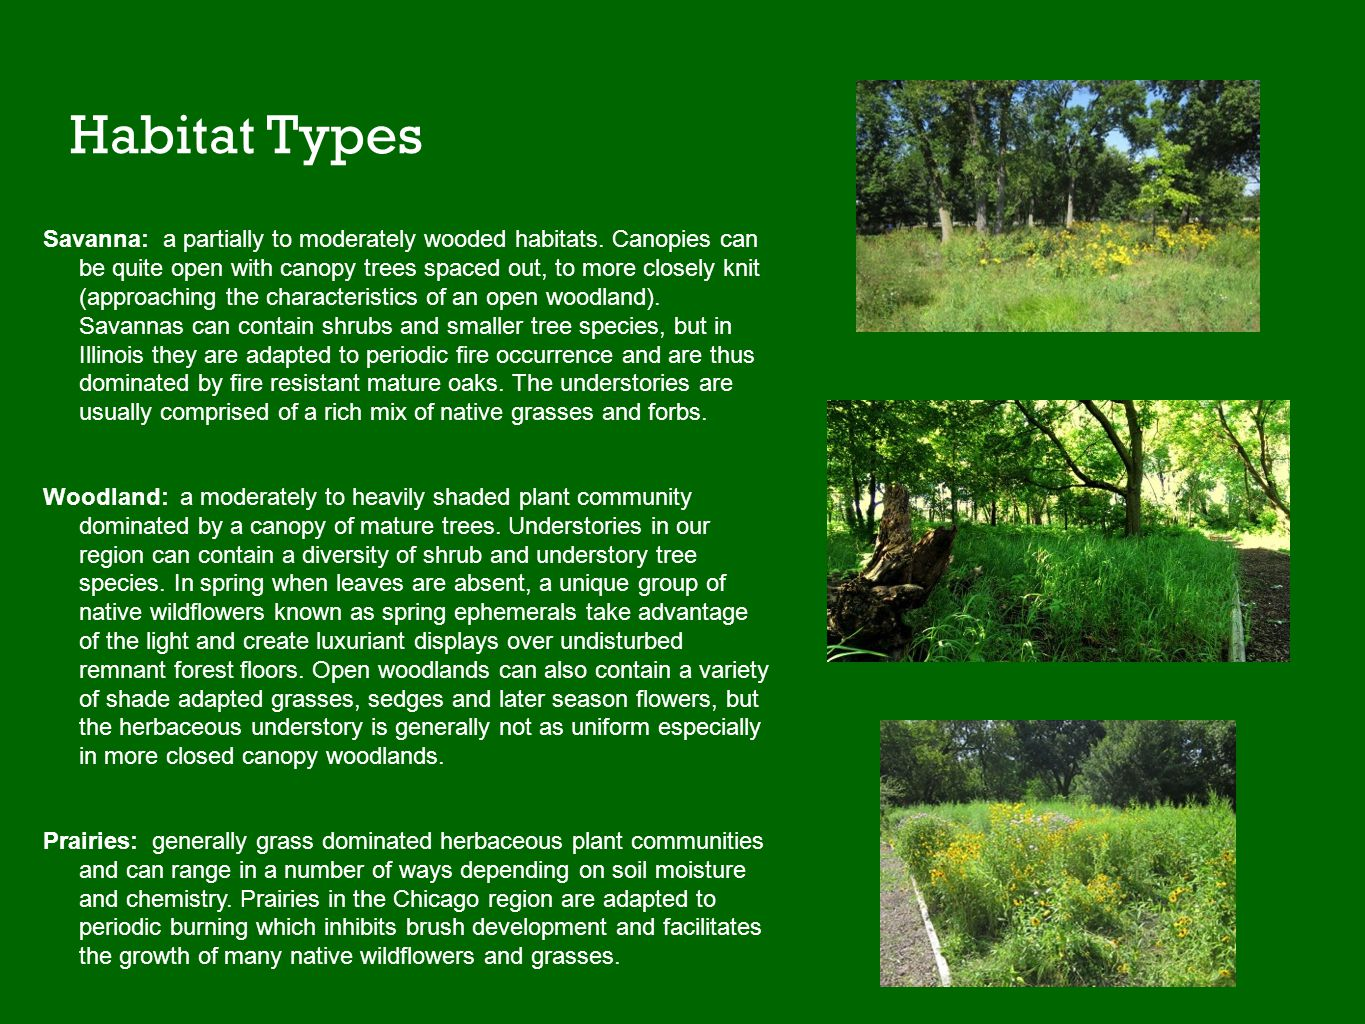 Habitat Types Savanna: a partially to moderately wooded habitats. Canopies can be quite open with canopy trees spaced out, to more closely knit (appro